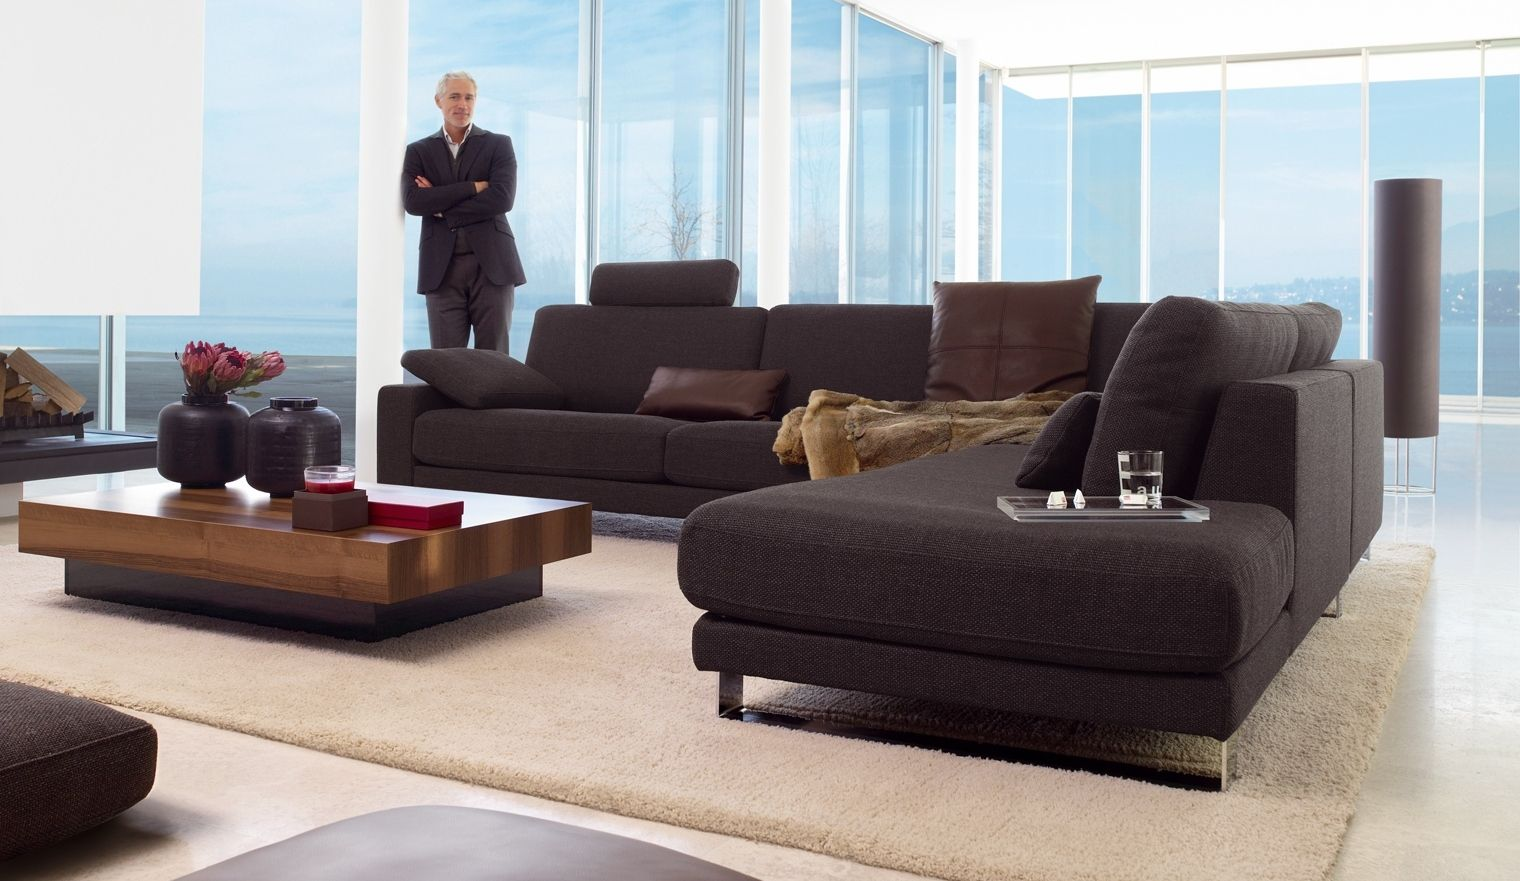 rolf benz ego in dark fabric plaisier we love rolf. Black Bedroom Furniture Sets. Home Design Ideas